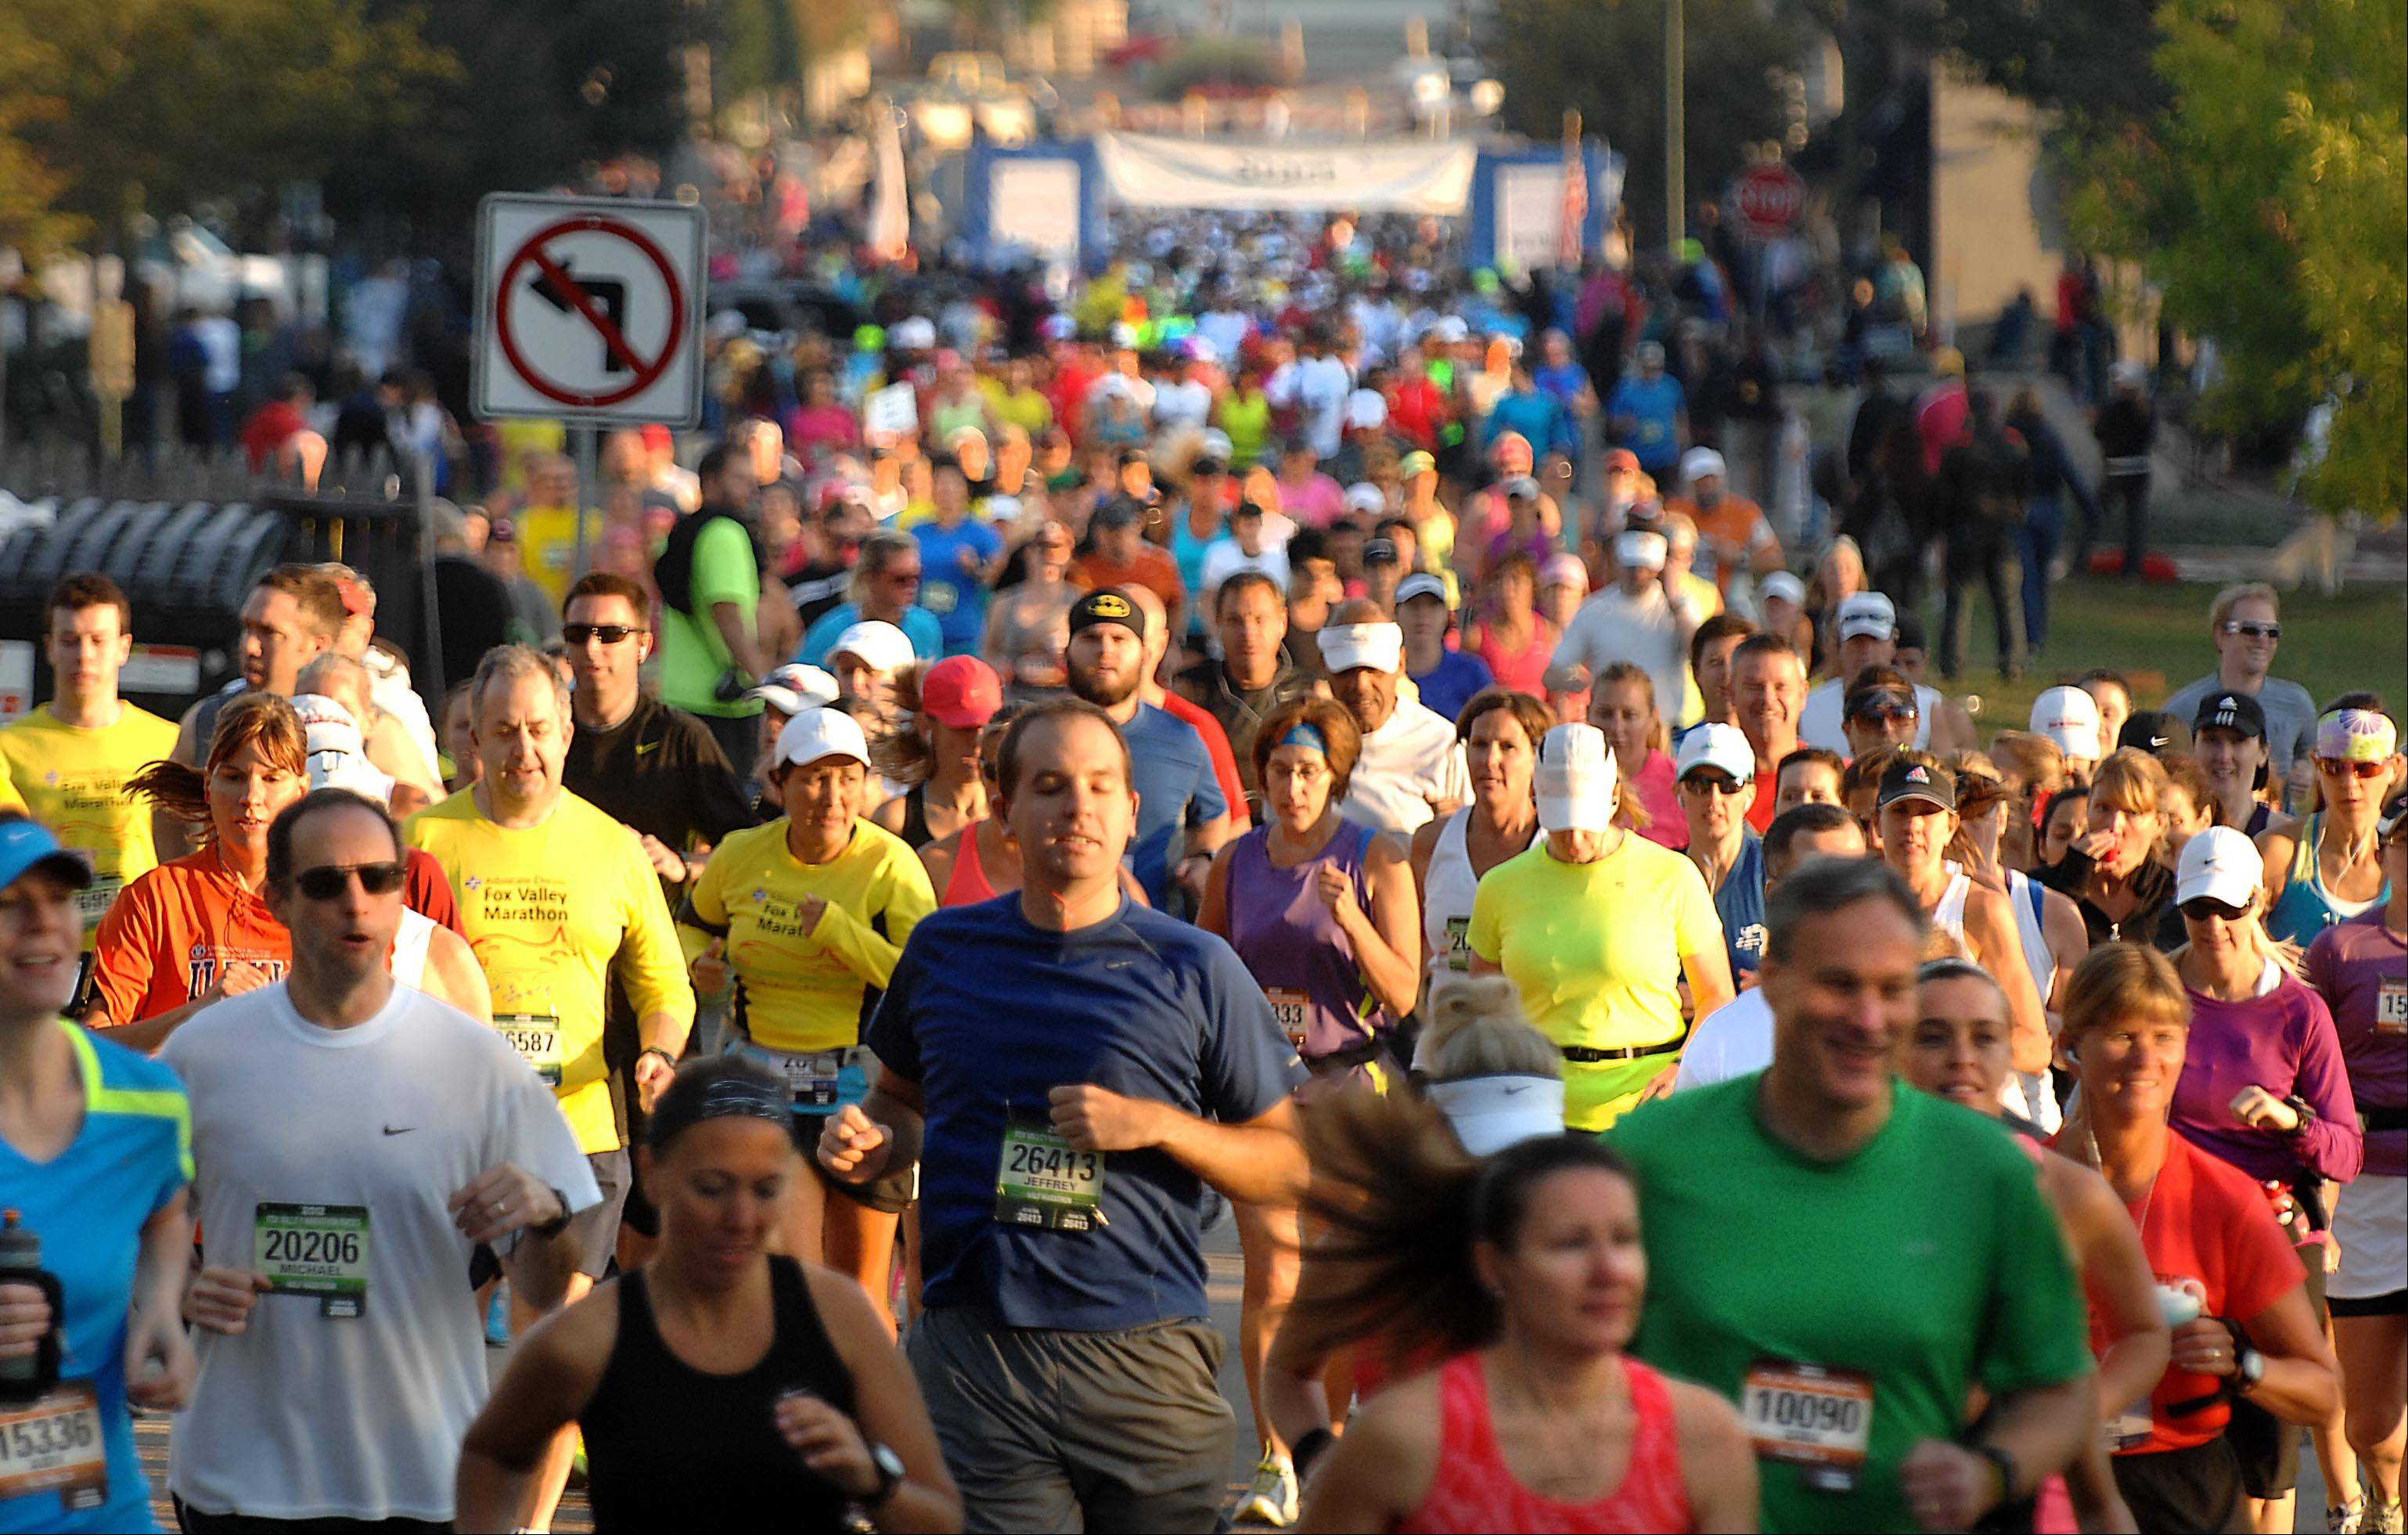 Naperville playing host to inaugural marathon